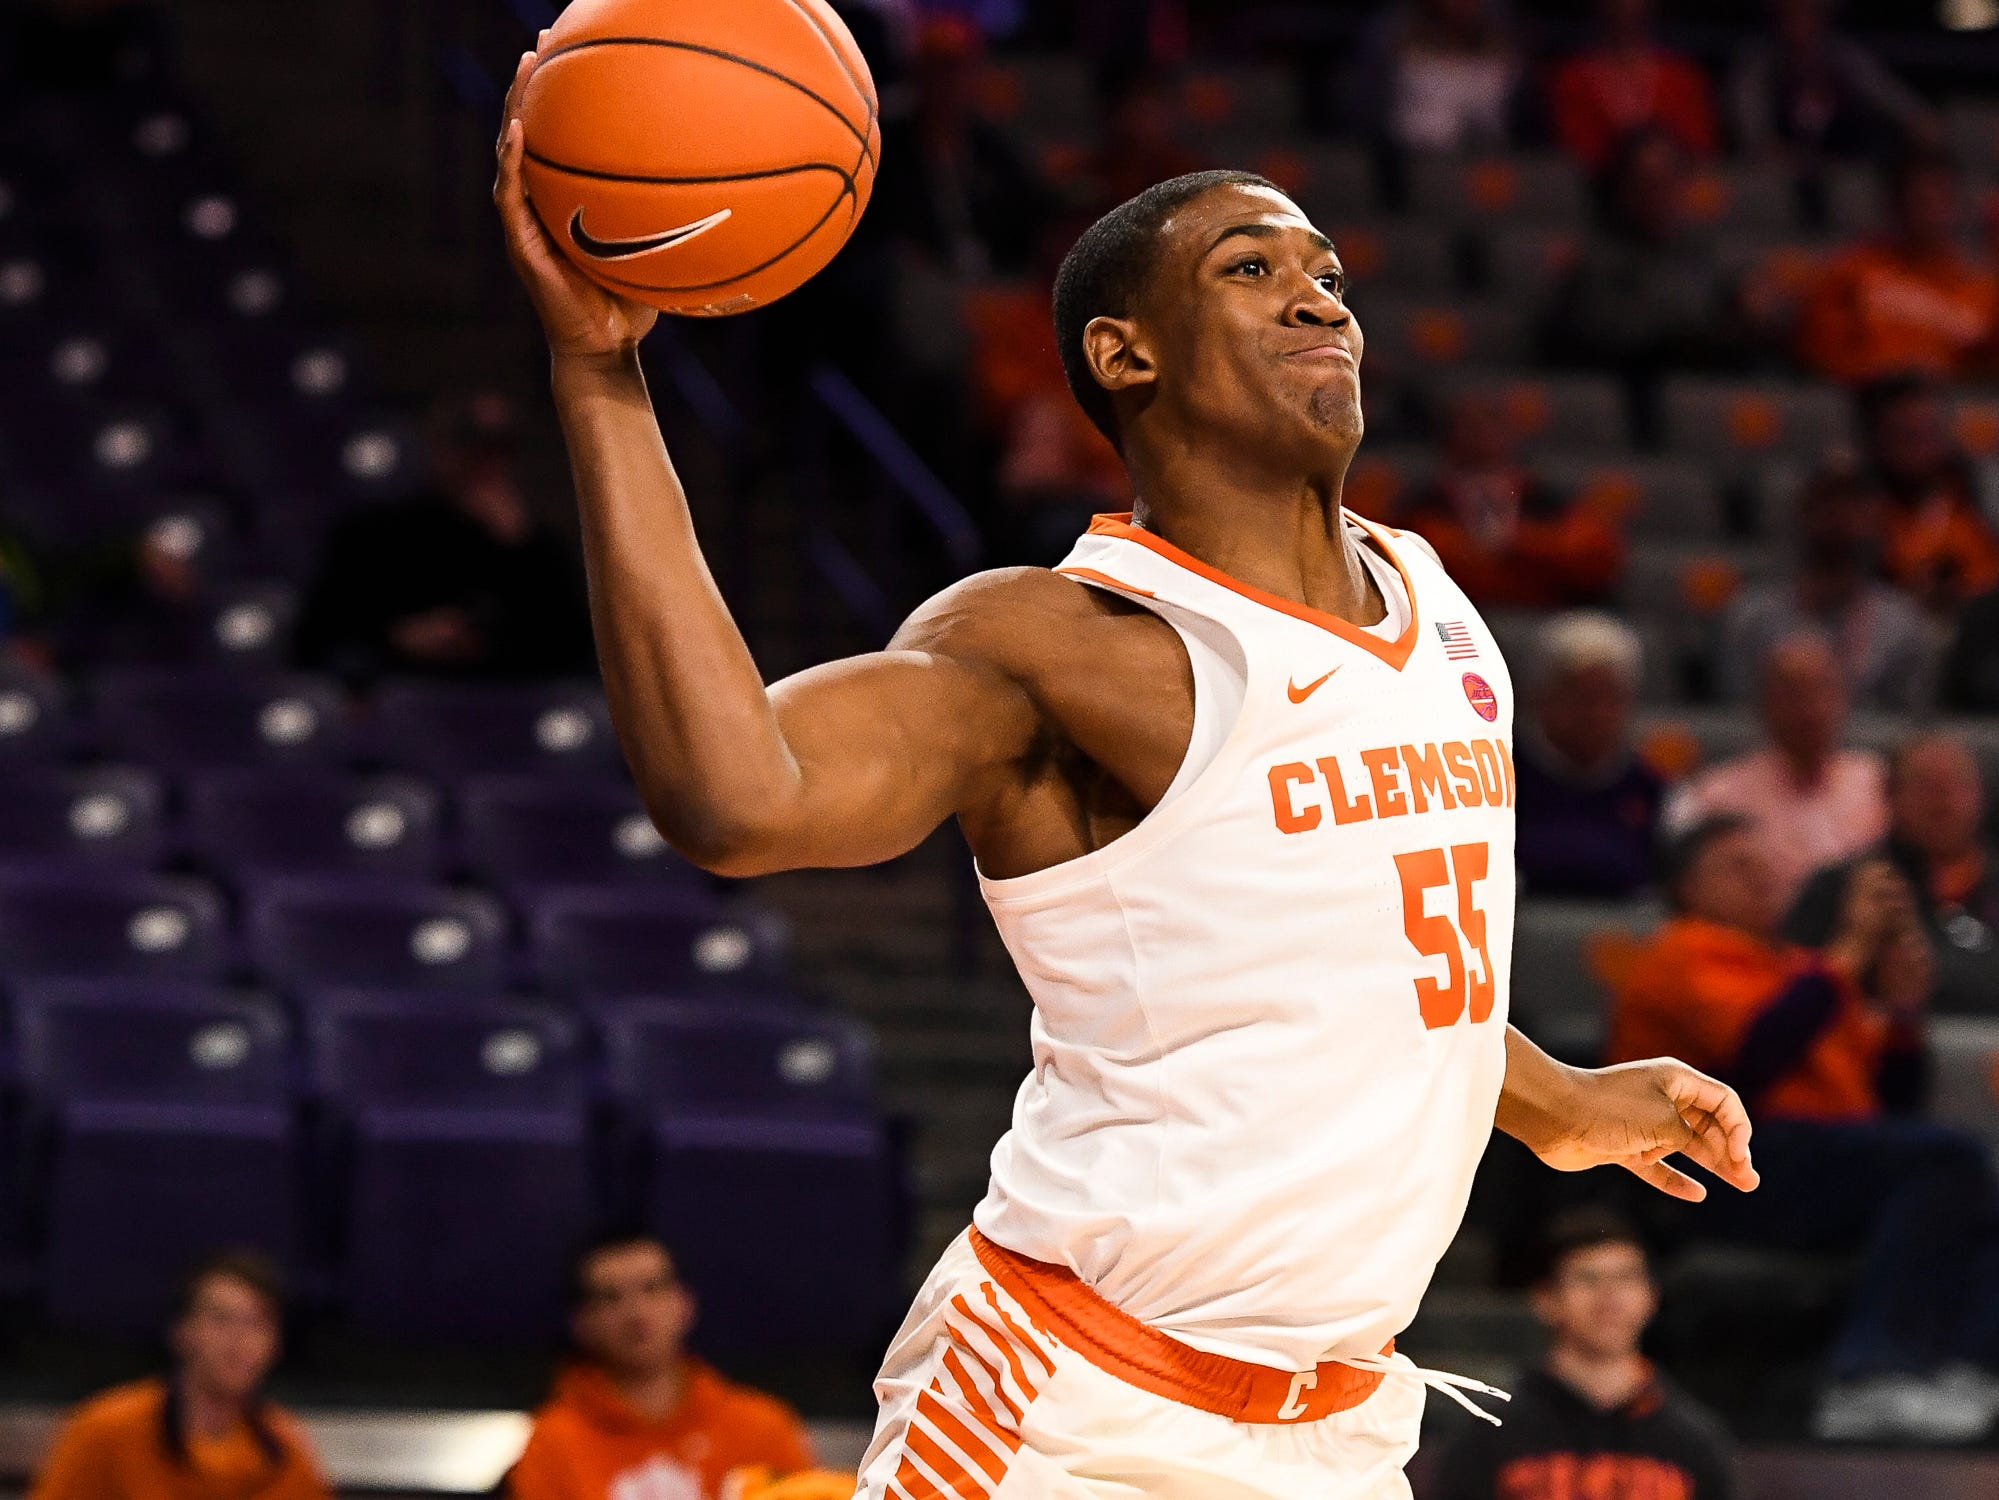 Clemson center Trey Jemison (55) attempts to throw the ball to a teammate during their game against Pittsburgh at Littlejohn Stadium on Tuesday, Jan. 29, 2019.